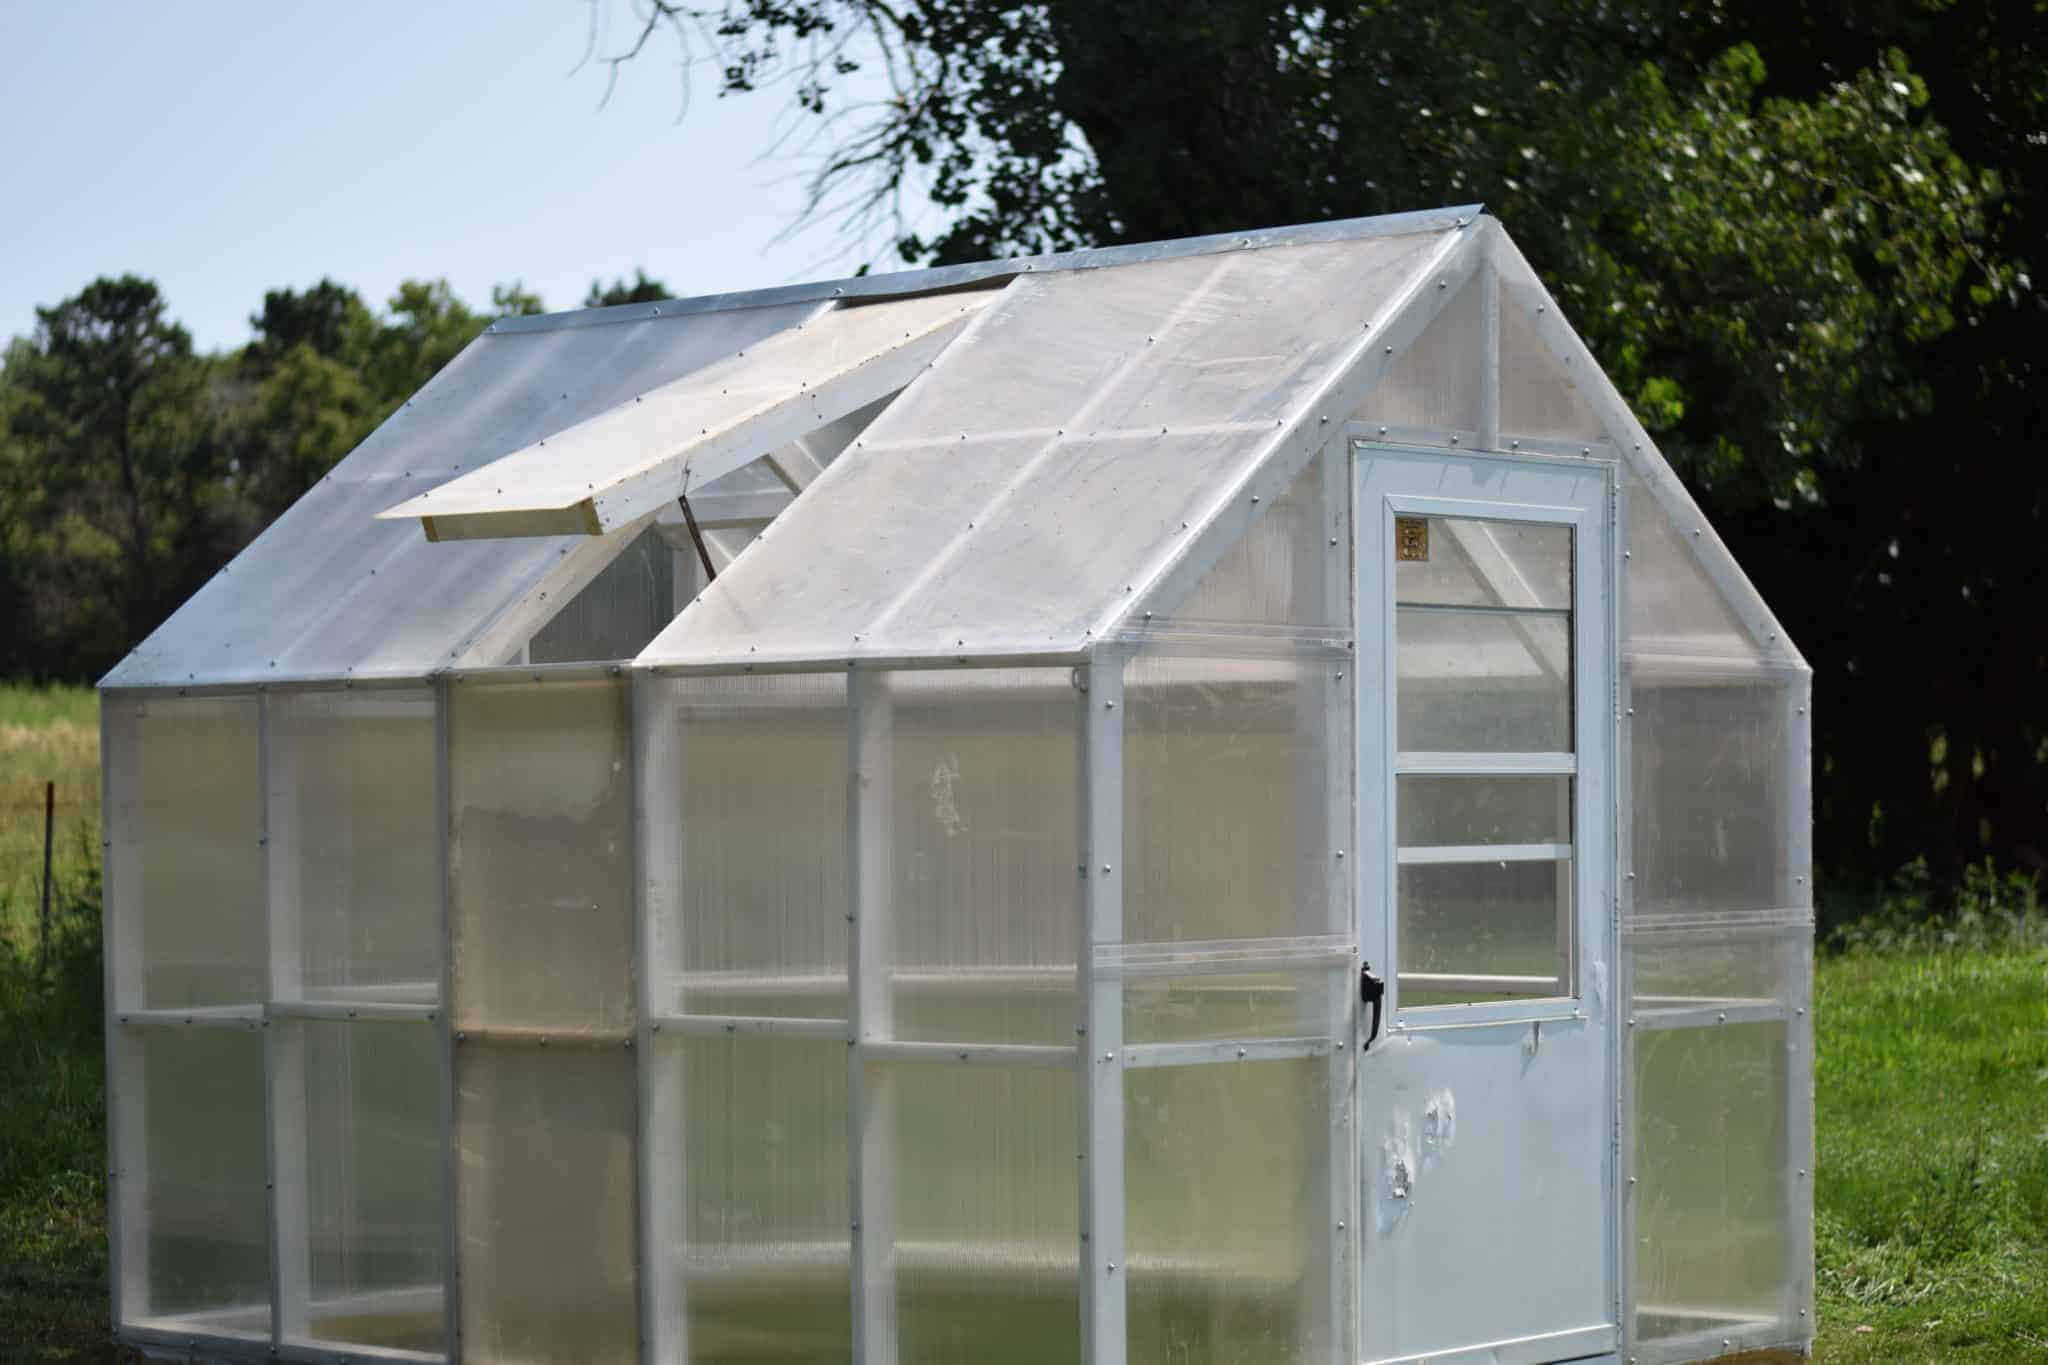 Completed greenhouse in outdoor garden with trees in background.